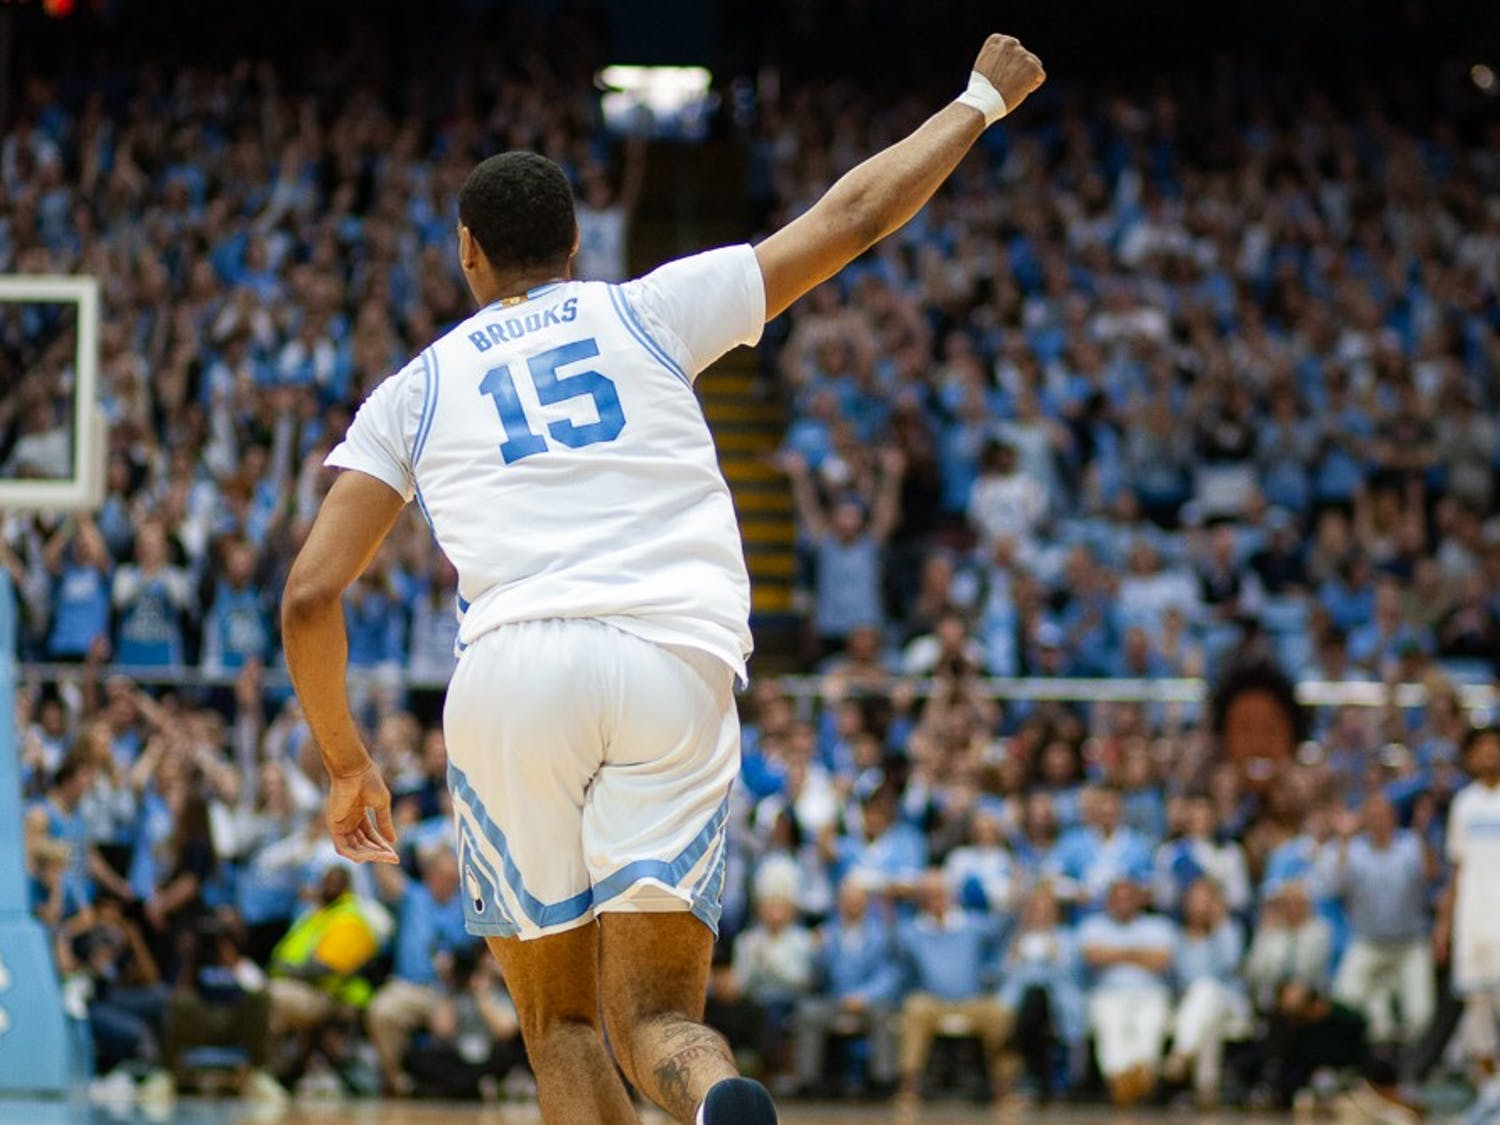 UNC junior forward Garrison Brooks (15) celebrates during a game against N.C. State in the Smith Center on Tuesday, Feb. 25, 2020. UNC defeated State 85-79, snapping the team's seven game losing streak.